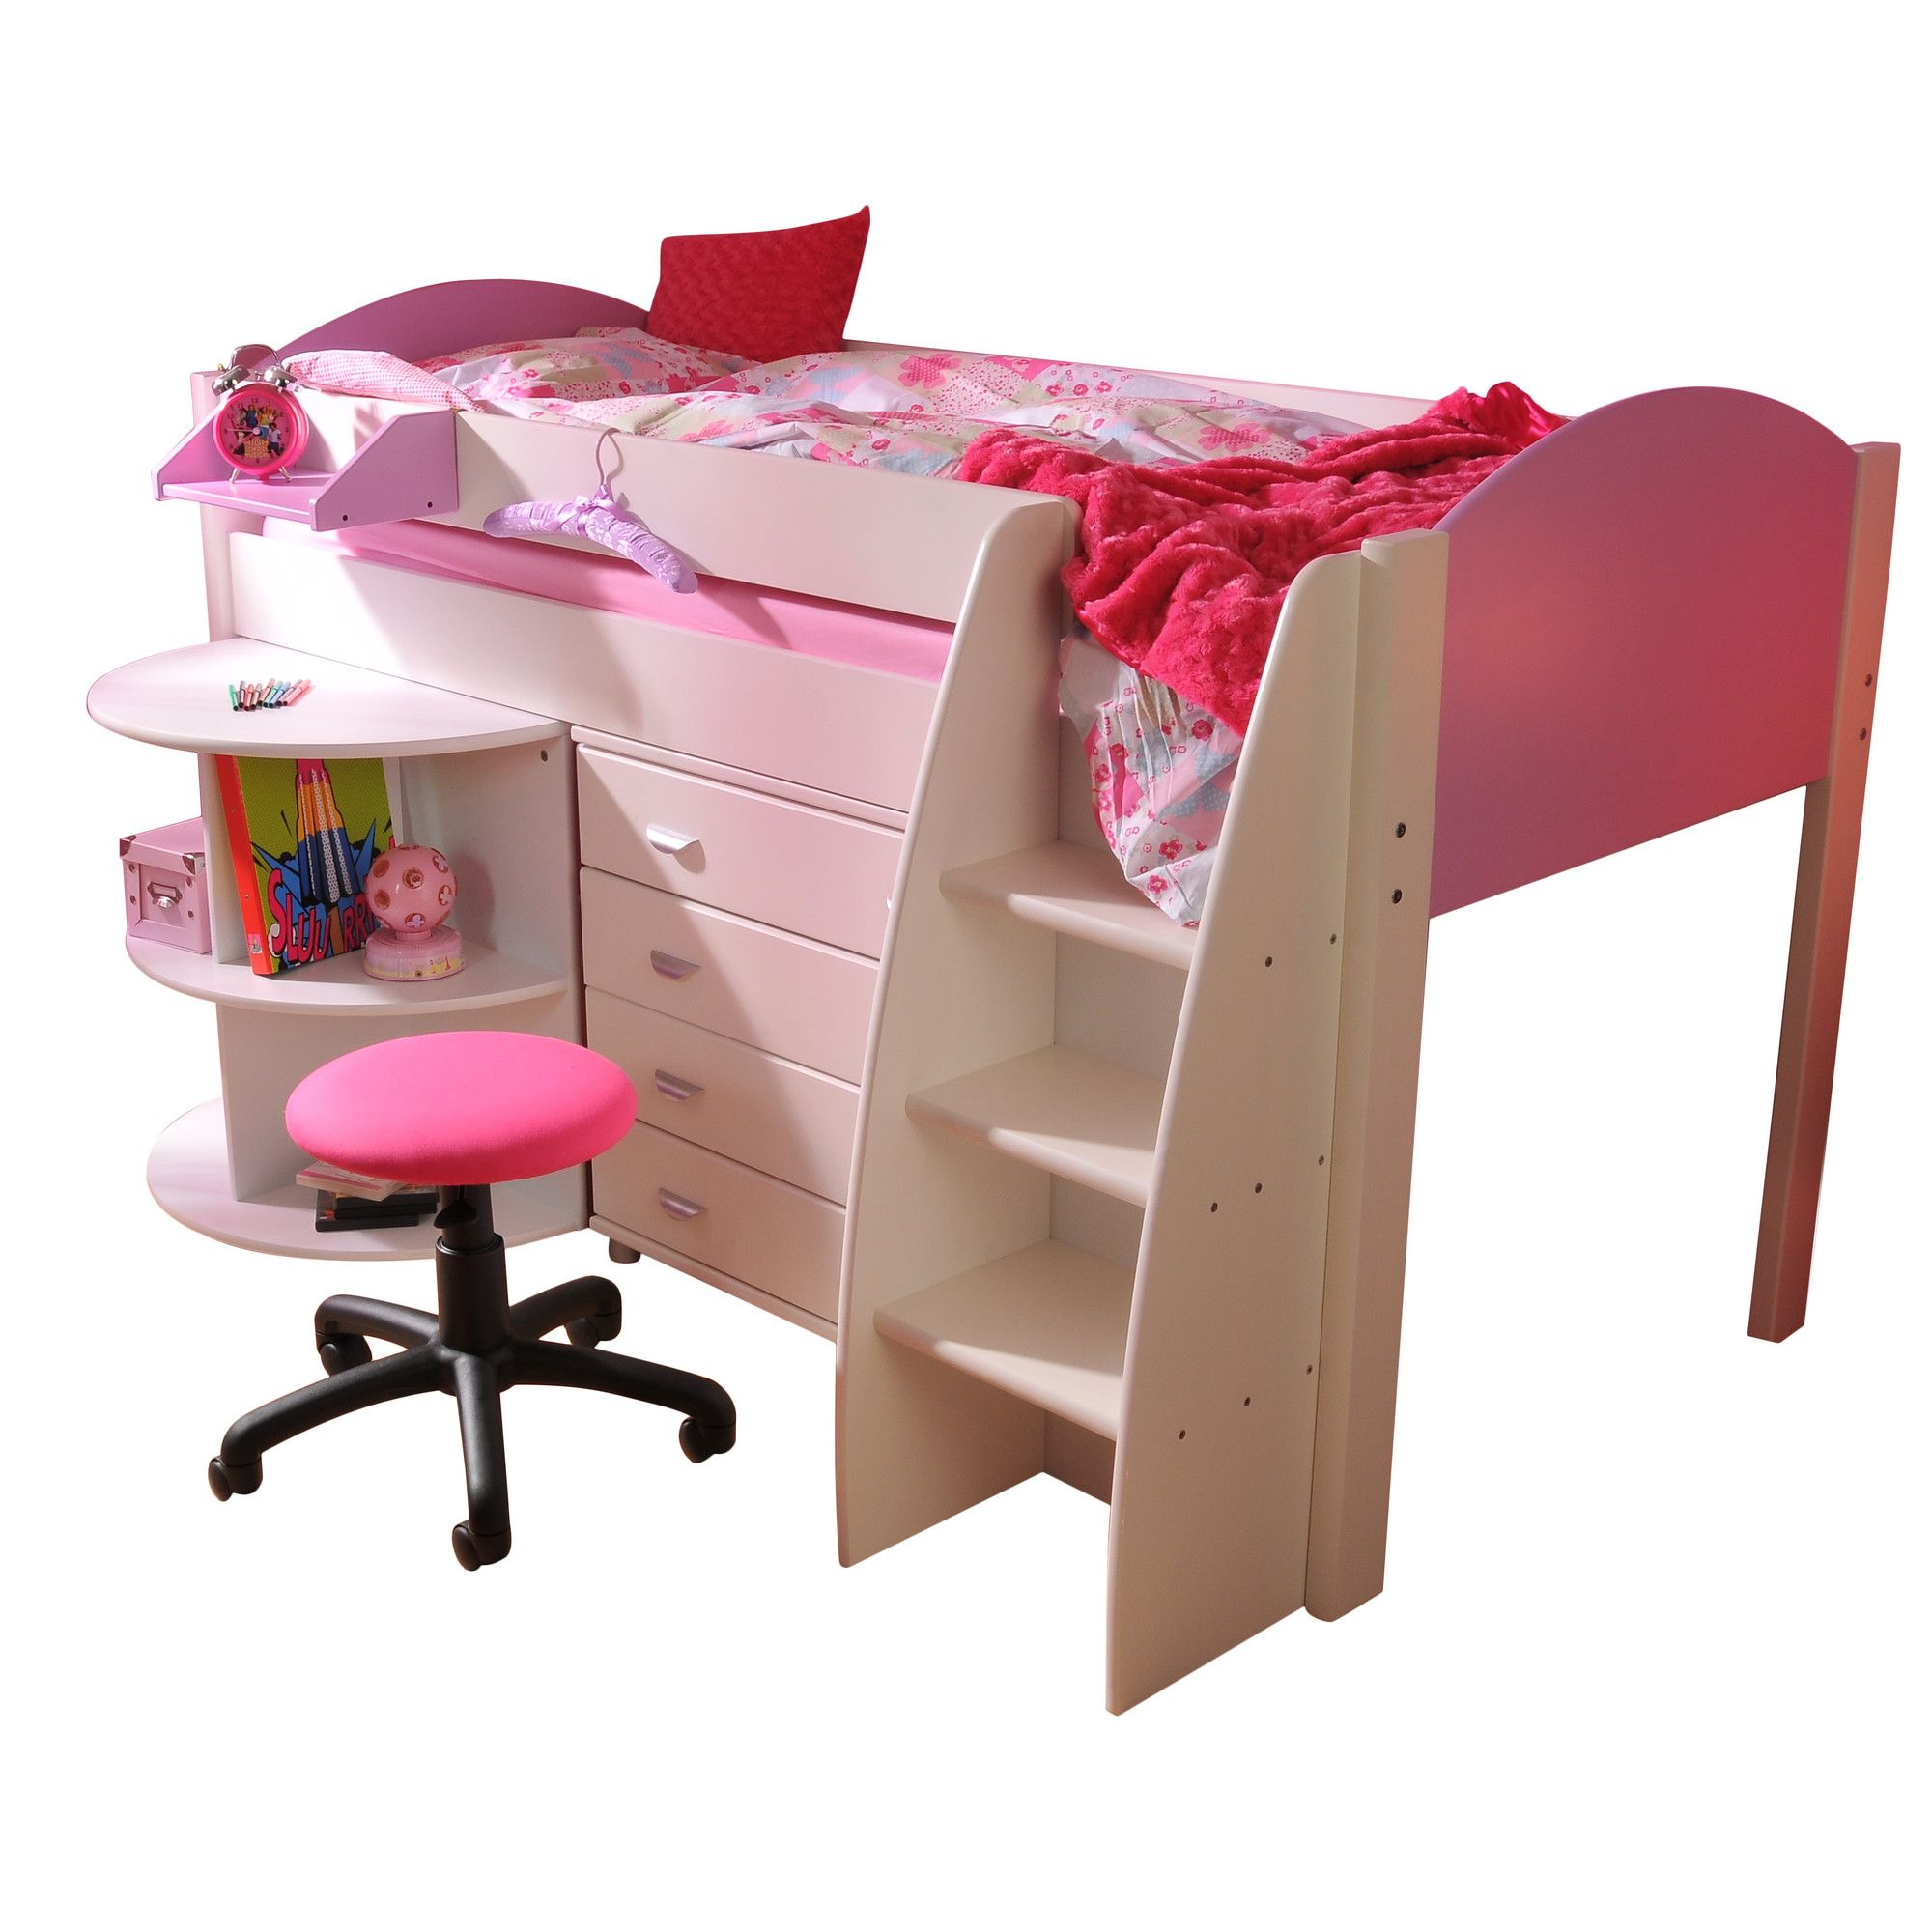 Stompa Rondo Mid Sleeper with 4 Drawer Chest and Extending Desk - Antique - Lilac at Tesco Direct